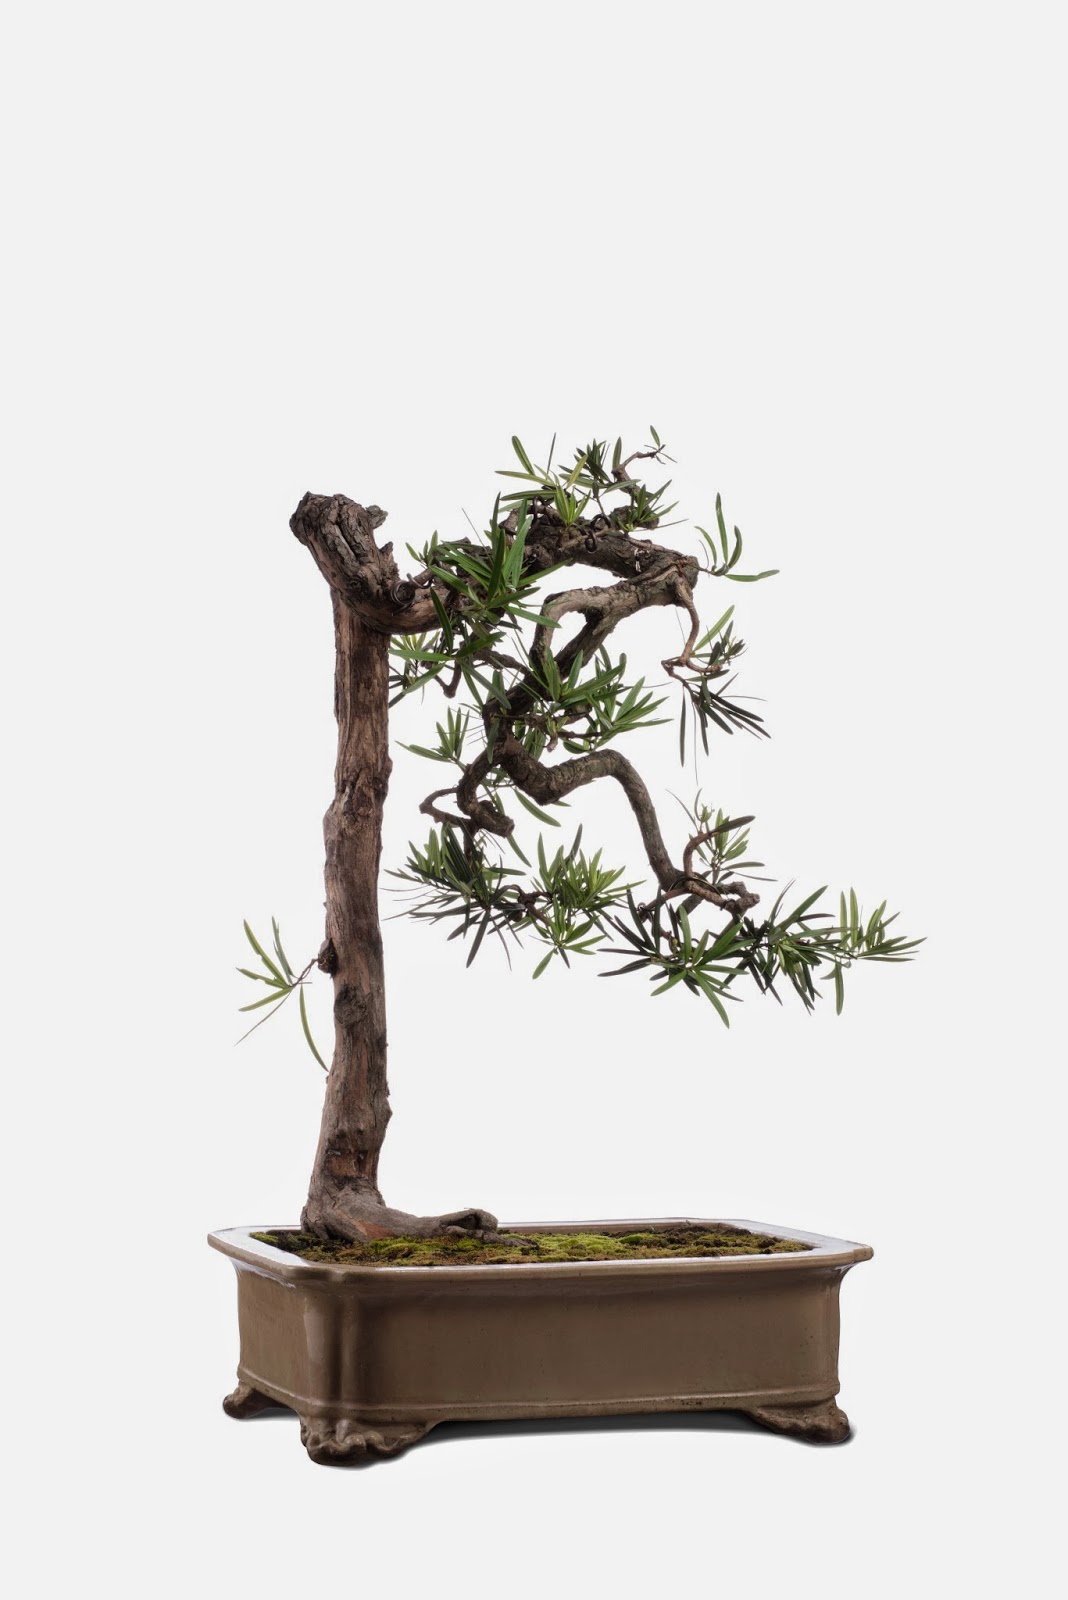 Kee Hua Chee Live EXQUISITE AND HISTORIC BONSAI PLANTS FOR